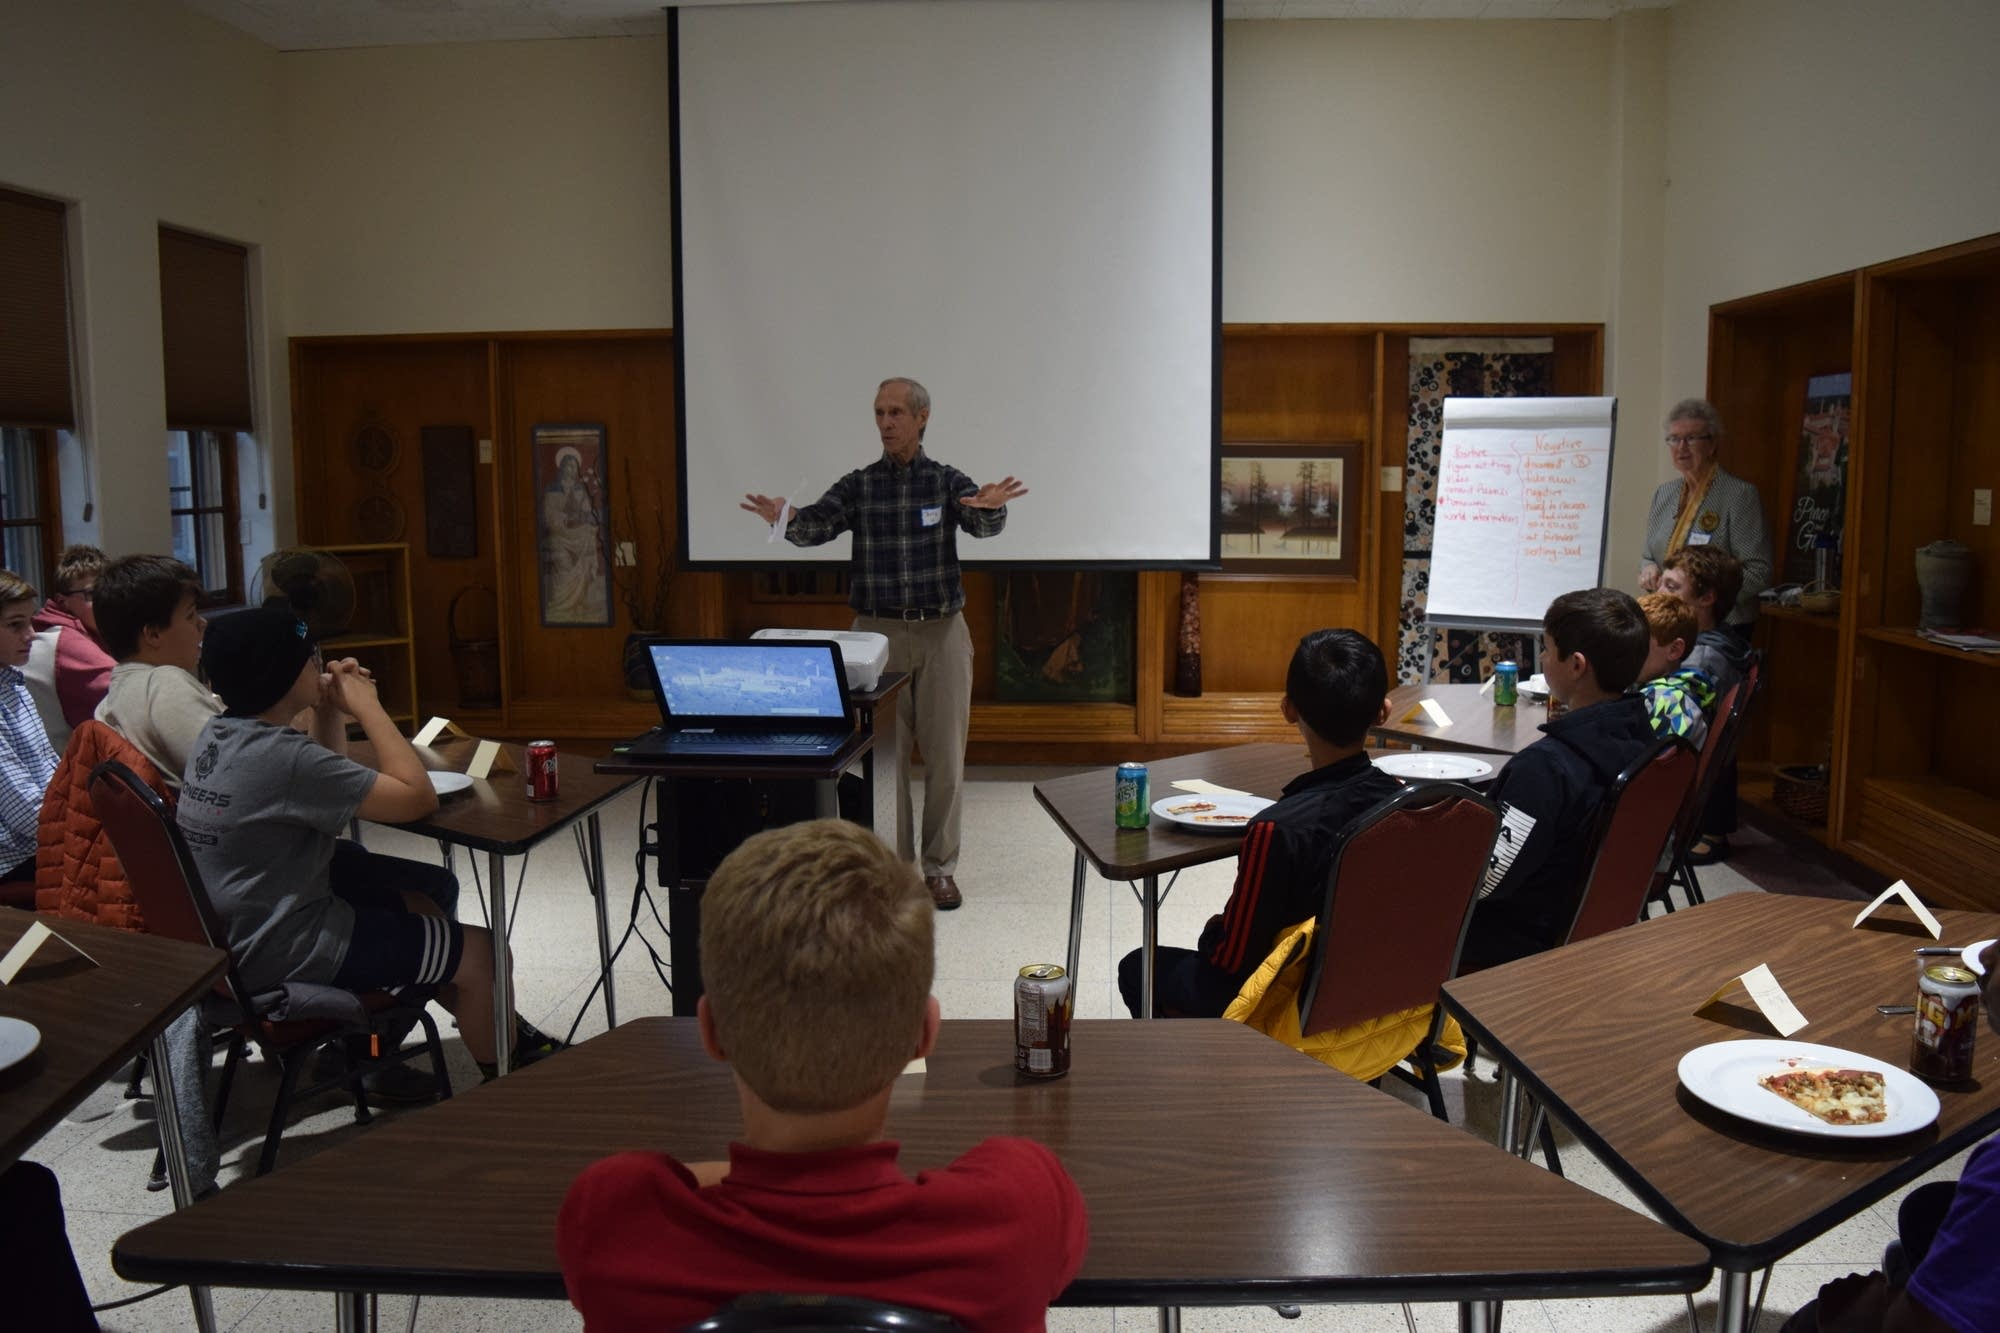 Retired teacher Jerry Hrabe talks to a group of adolescent boys.